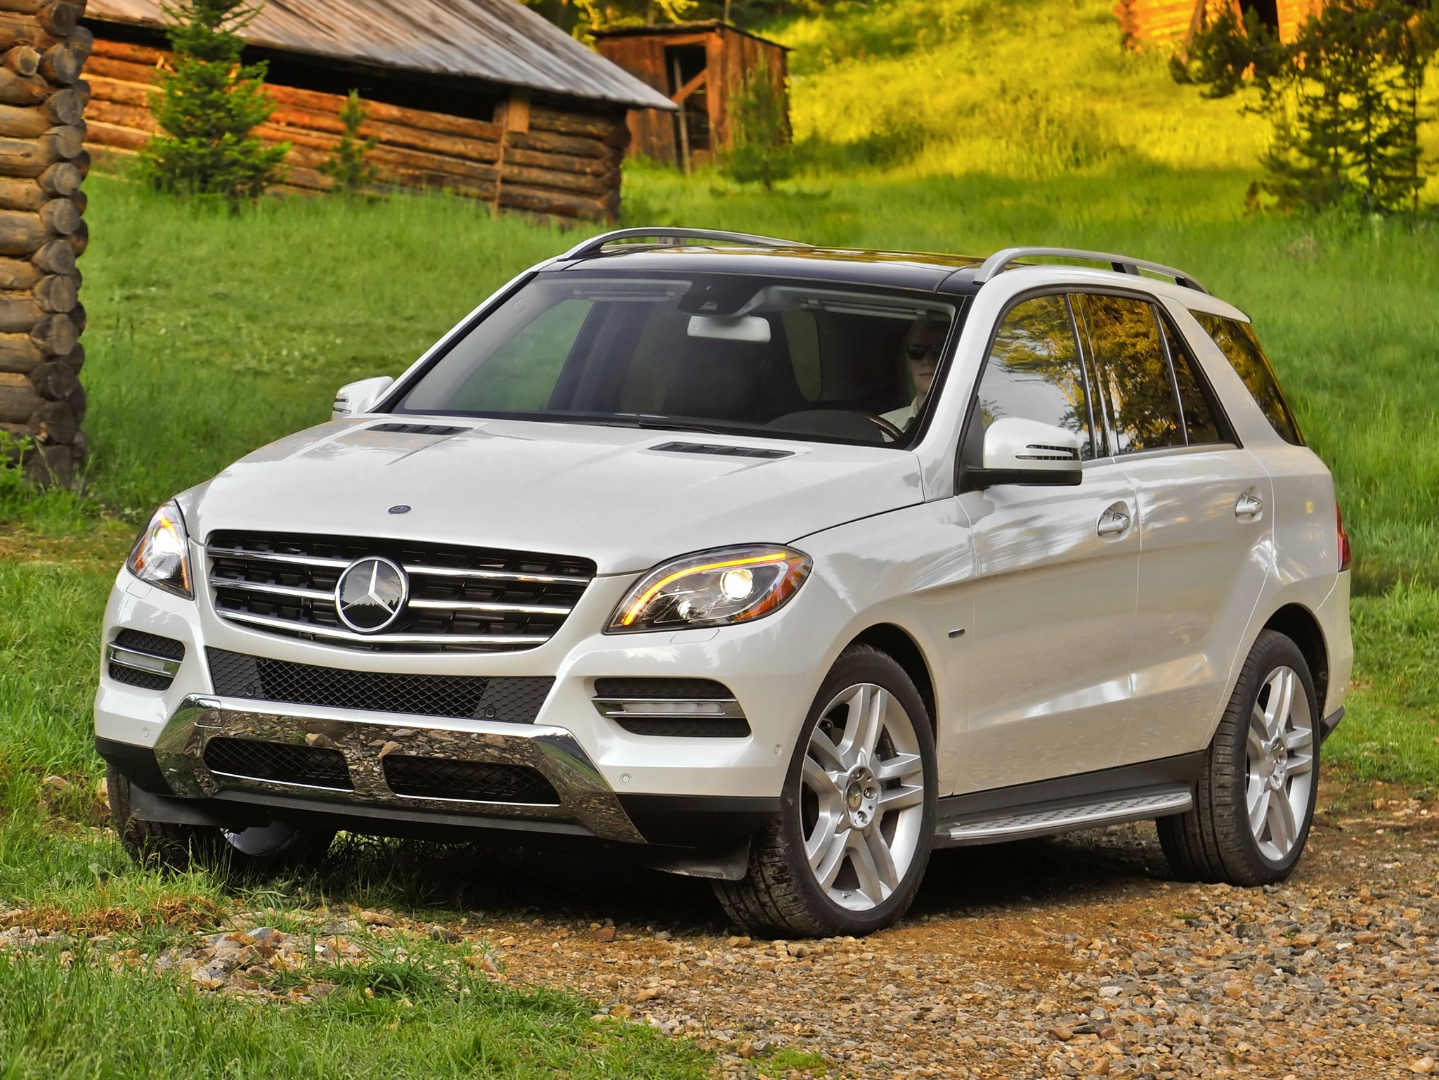 2014 mercedes benz m class comes with standard collision